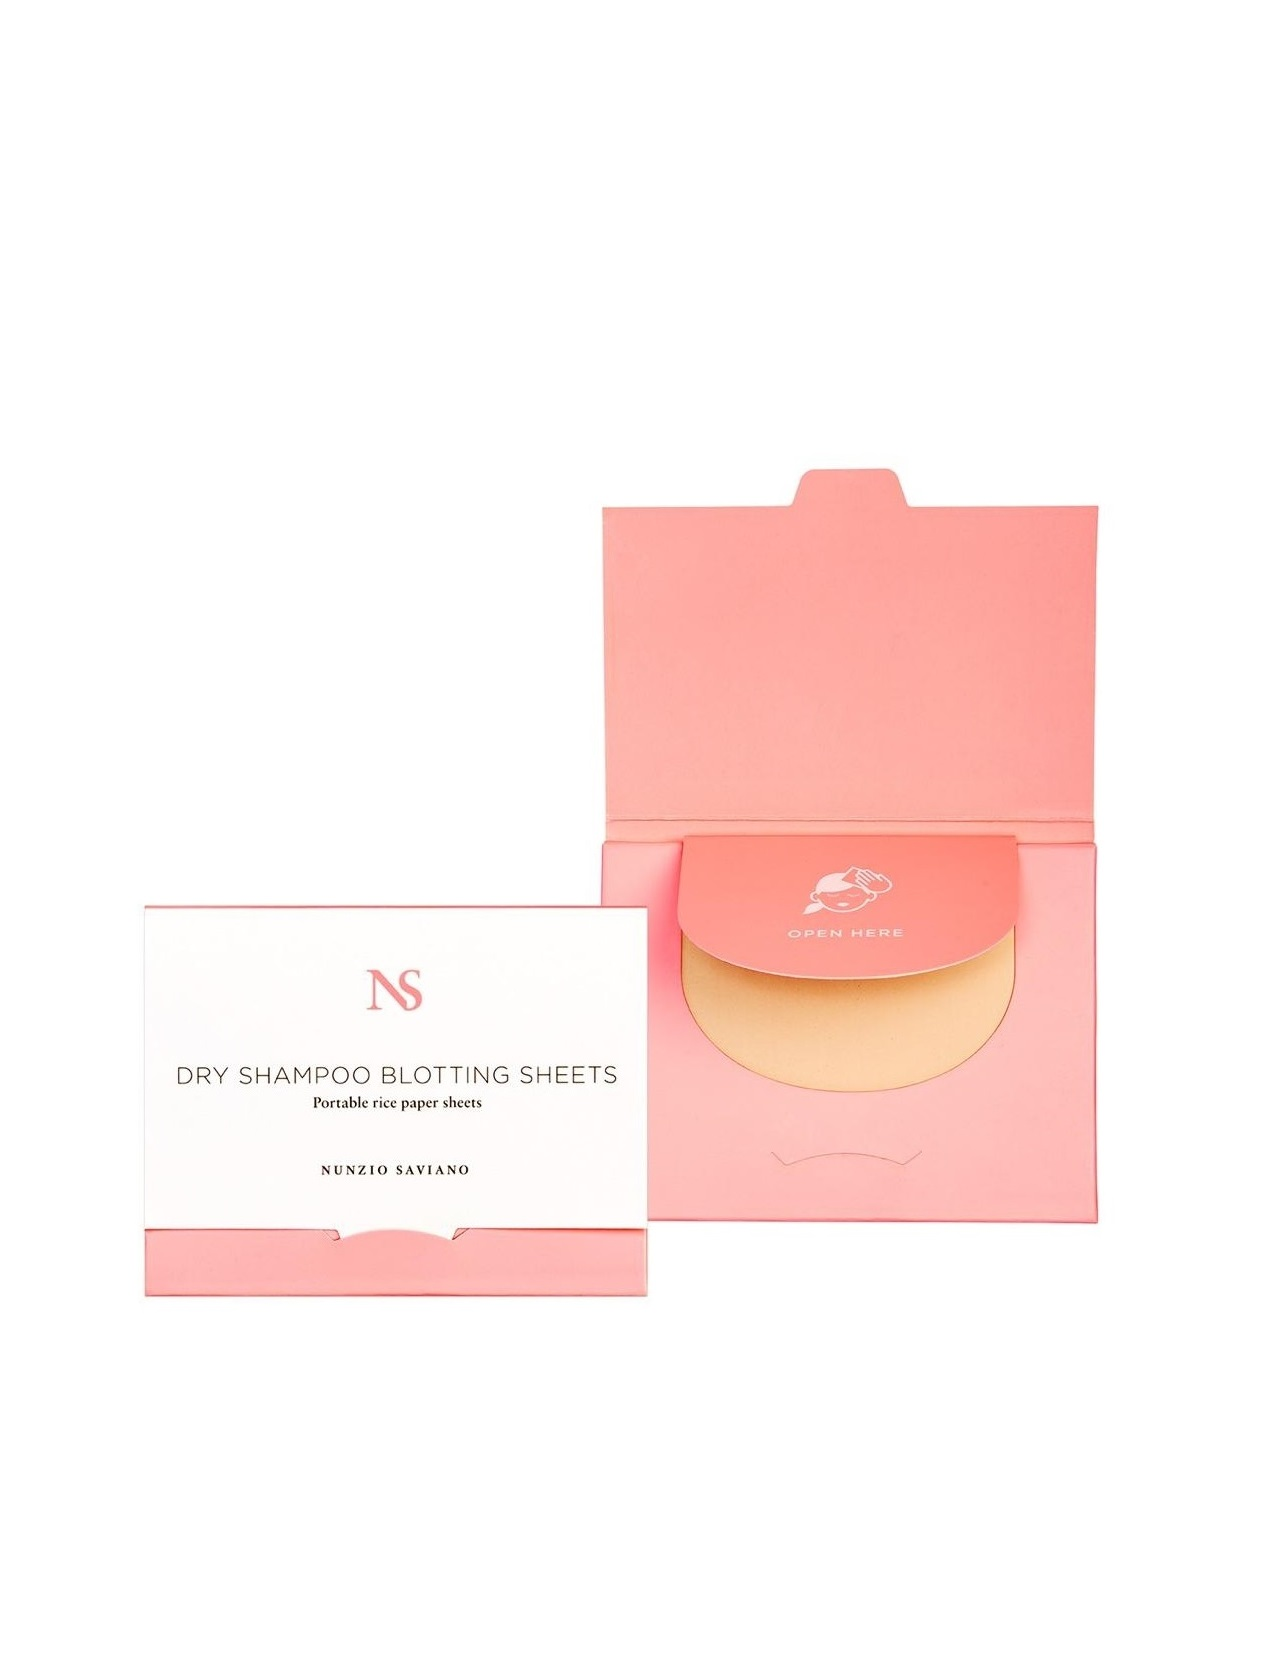 Dry Shampoo Blotting Sheets - Okay, this may have officially launched at the end of 2017 but the trend of sheets for haircare is a totally 2018 trend. I obviously prefer this method instead of the spray stuff. 1. It's easier to take on the go. 2. It absorbs oil without causing product build up on the scalp.